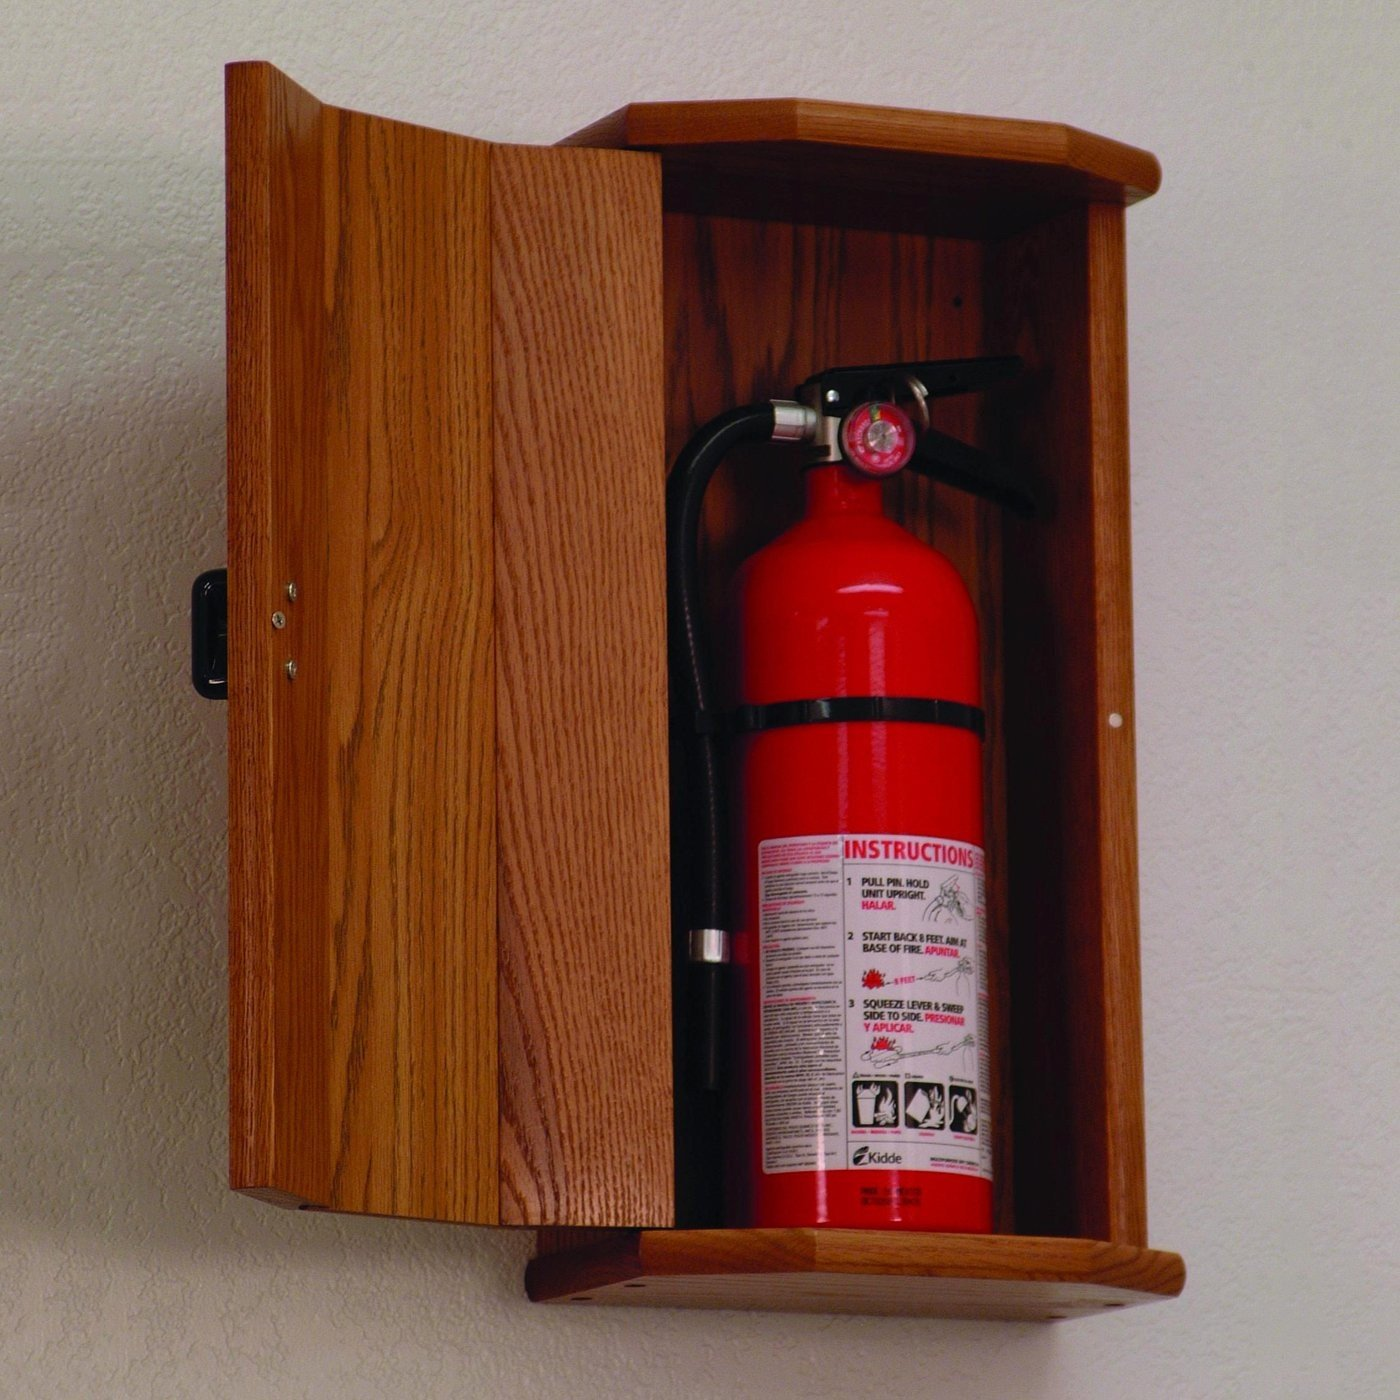 Wooden Mallet FEC20 10 lb. Fire Extinguisher Cabinet in Medium Oak from ABC Office